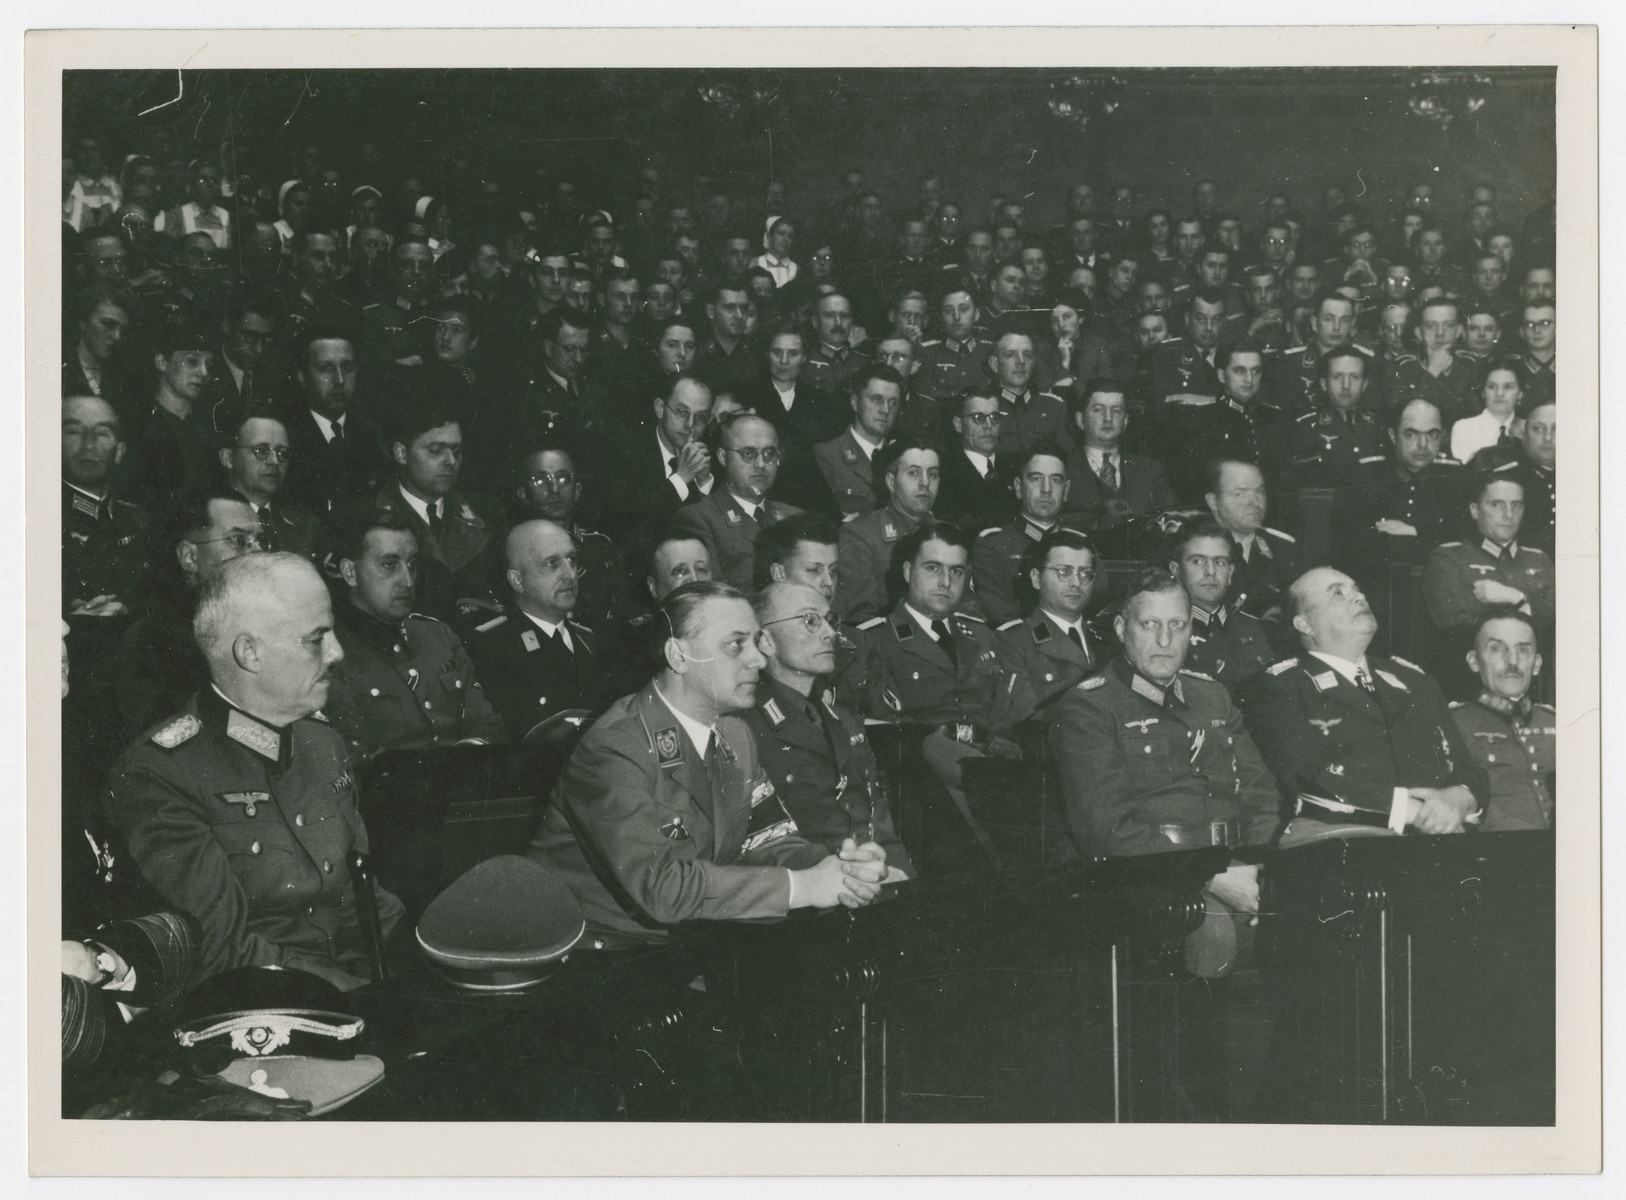 Alfred Rosenberg sits in the French National Assembly where he is giving a major address.  Among those pictured are:  Helmuth Knochen (Commander of the secret police in occupied Paris), Hugo Sperrle (Luftwaffe general), and Otto Von Stulpnagel (Military commander of France).  The following have also been identified:  third from right:  SS-Brigadefuehrer Dr. Harald Turner (in German Army administration official uniform in his capacity as Chief of the German Military Administration in Paris), and at far left in the foreground:  SA-Obergruppenfuehrer Friedrich (Fritz) Pfeffer von Salomon (in the uniform of a Kriegsverwaltungsvizechef), who served from October 25, 1940 to March 1, 1941 as Deputy Chief of the Administrative Staff to the Military Commander in France.